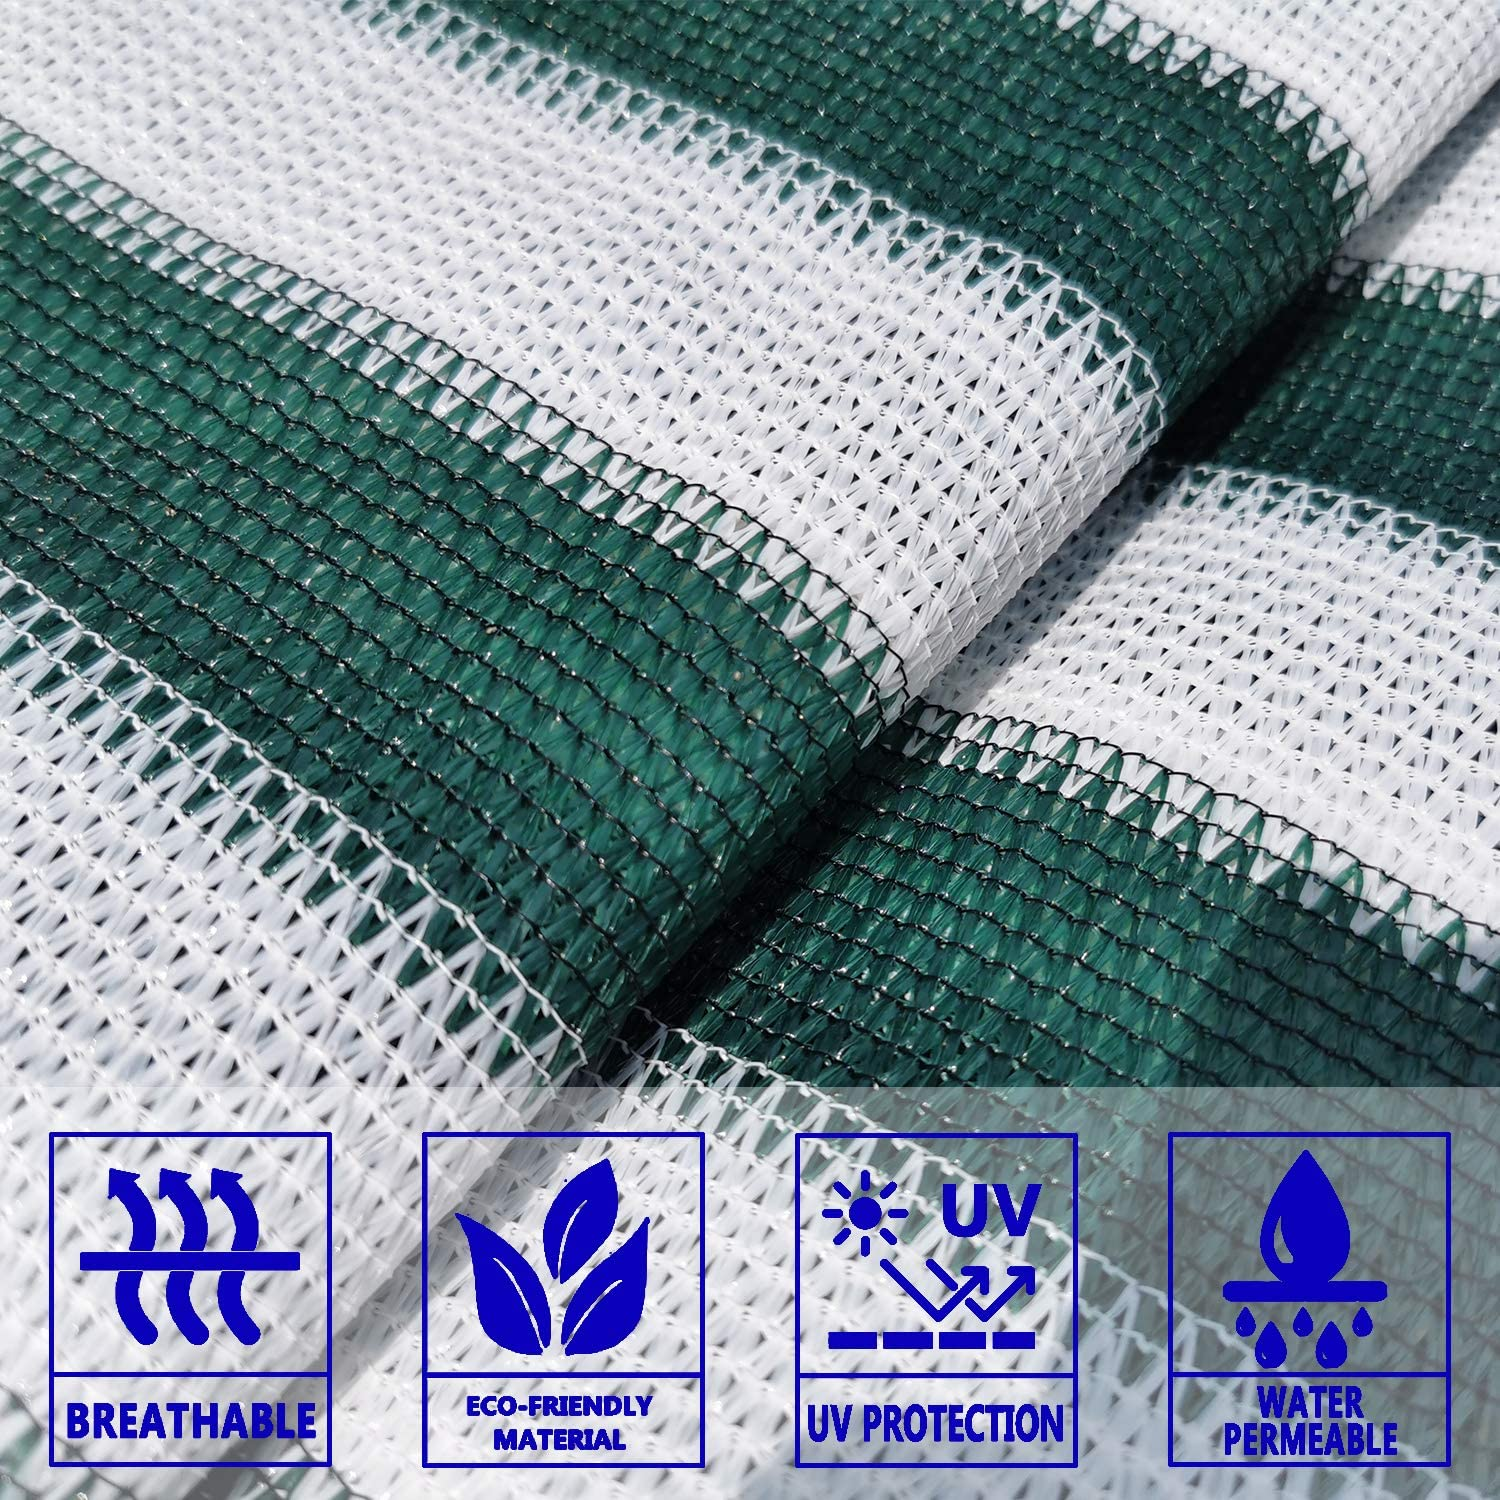 3x10 Fence Mesh 90/% Blockage Net Tarp Cover for Baby Safety Proof On Outdoor Rail Deck Solid Green White Color Balcony Privacy Screen